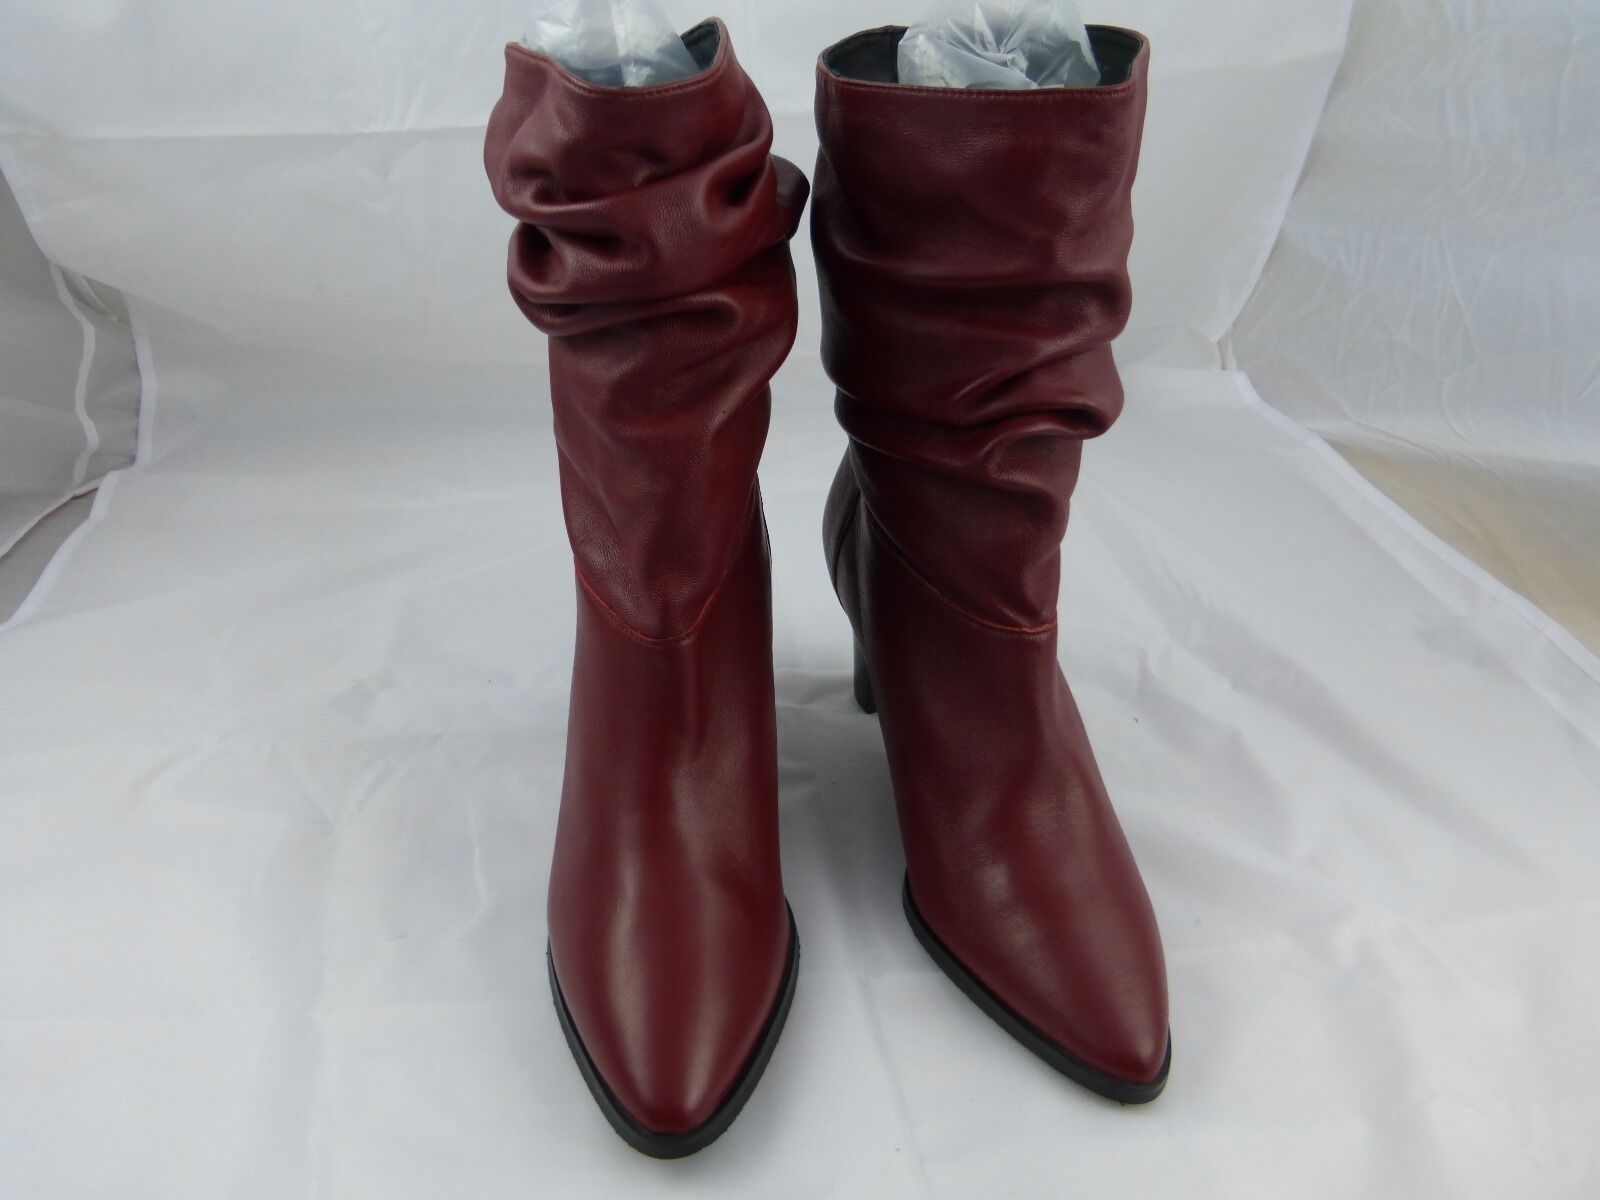 adrianna papell midcalf boots, red/rust  leather New, size 7